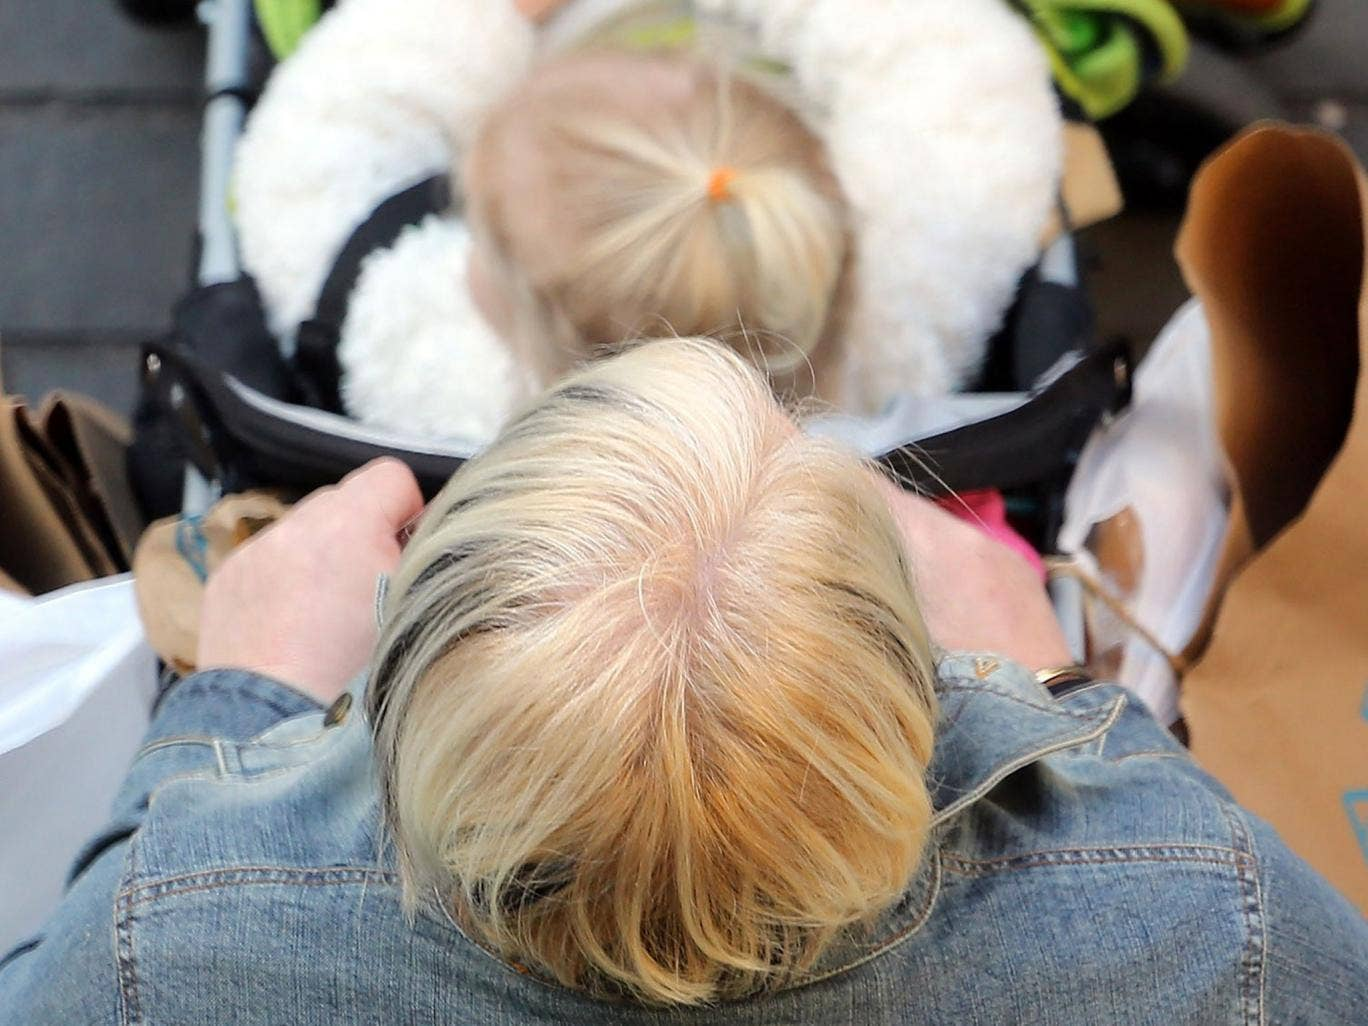 Pushy: mothers who are penalised by cuts are applying pressure